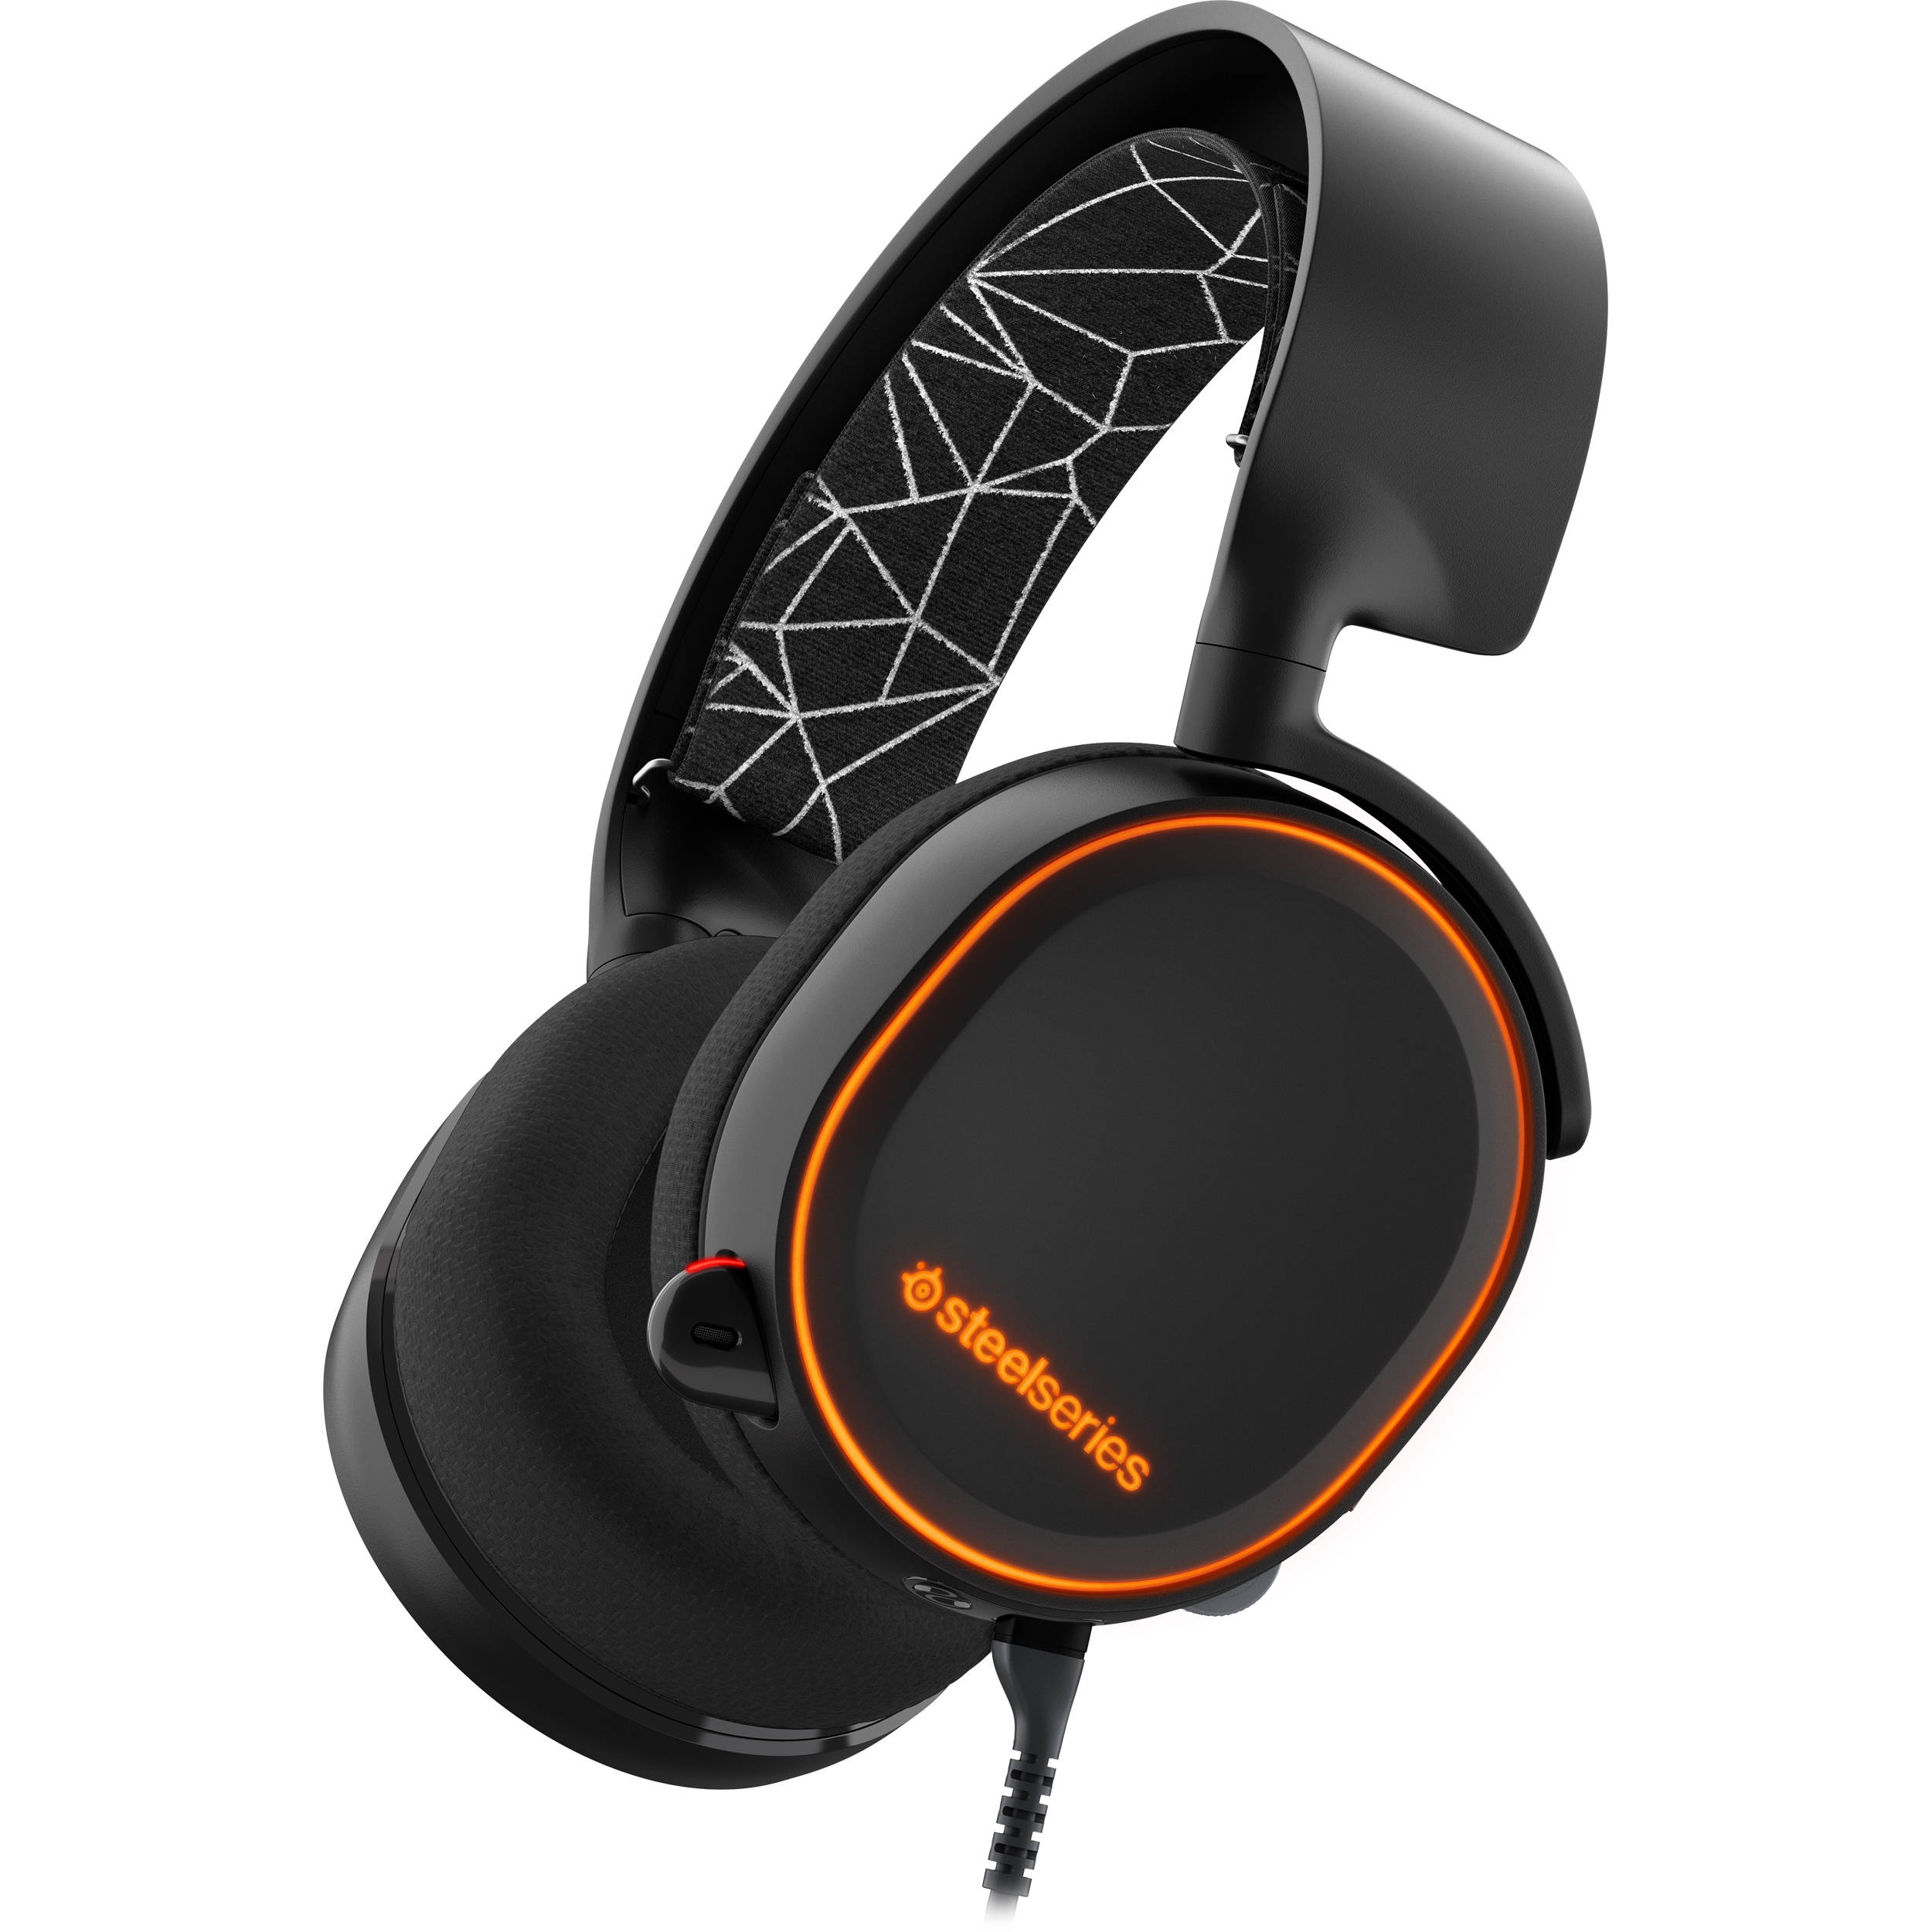 https://www.bhphotovideo.com/images/images2500x2500/steelseries_61443_arctis_5_gaming_headset_1297847.jpg